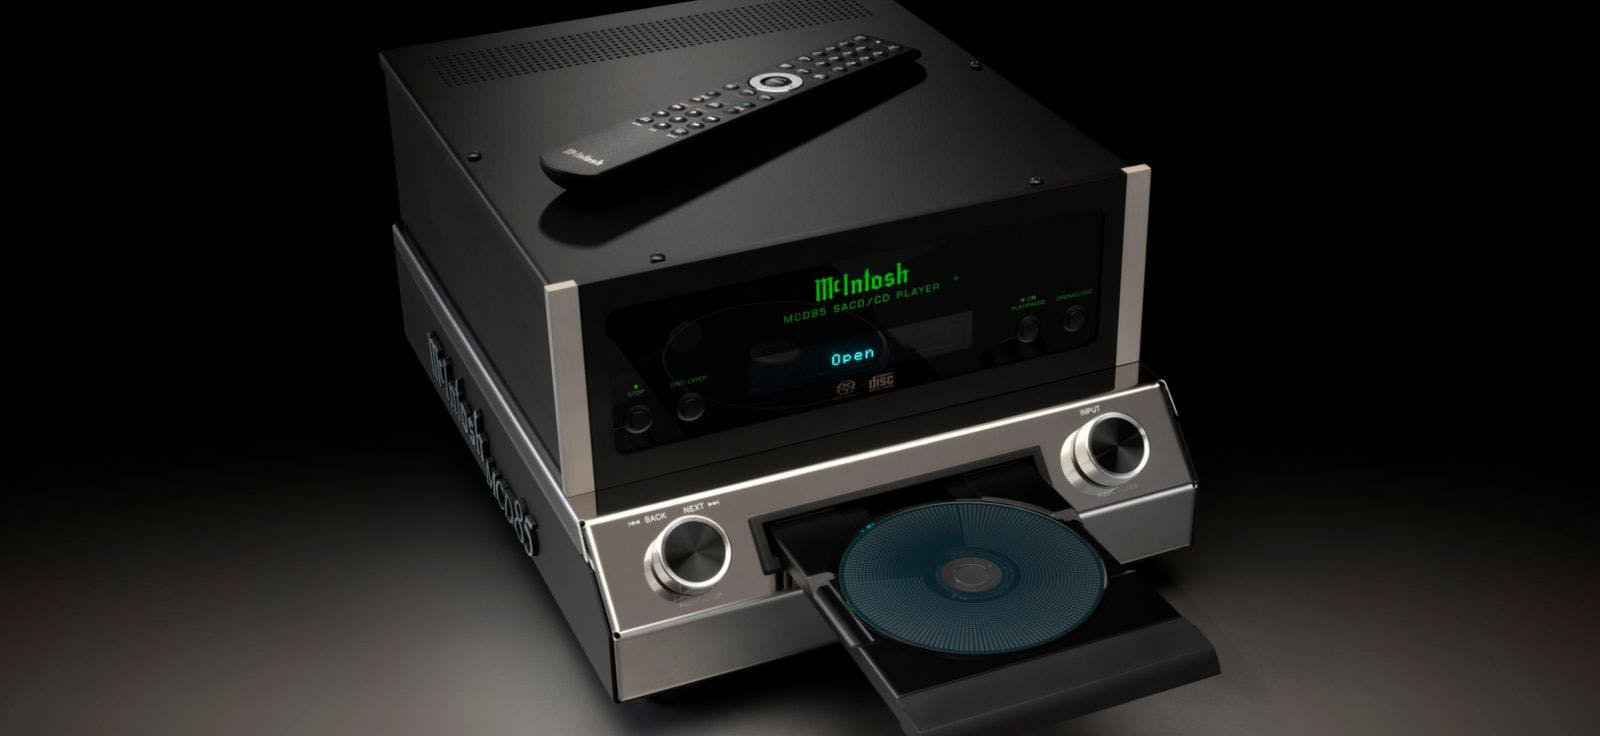 New MCD85 SACD/CD Player brings advanced McIntosh technologies to CD/SACD collections and USB devices